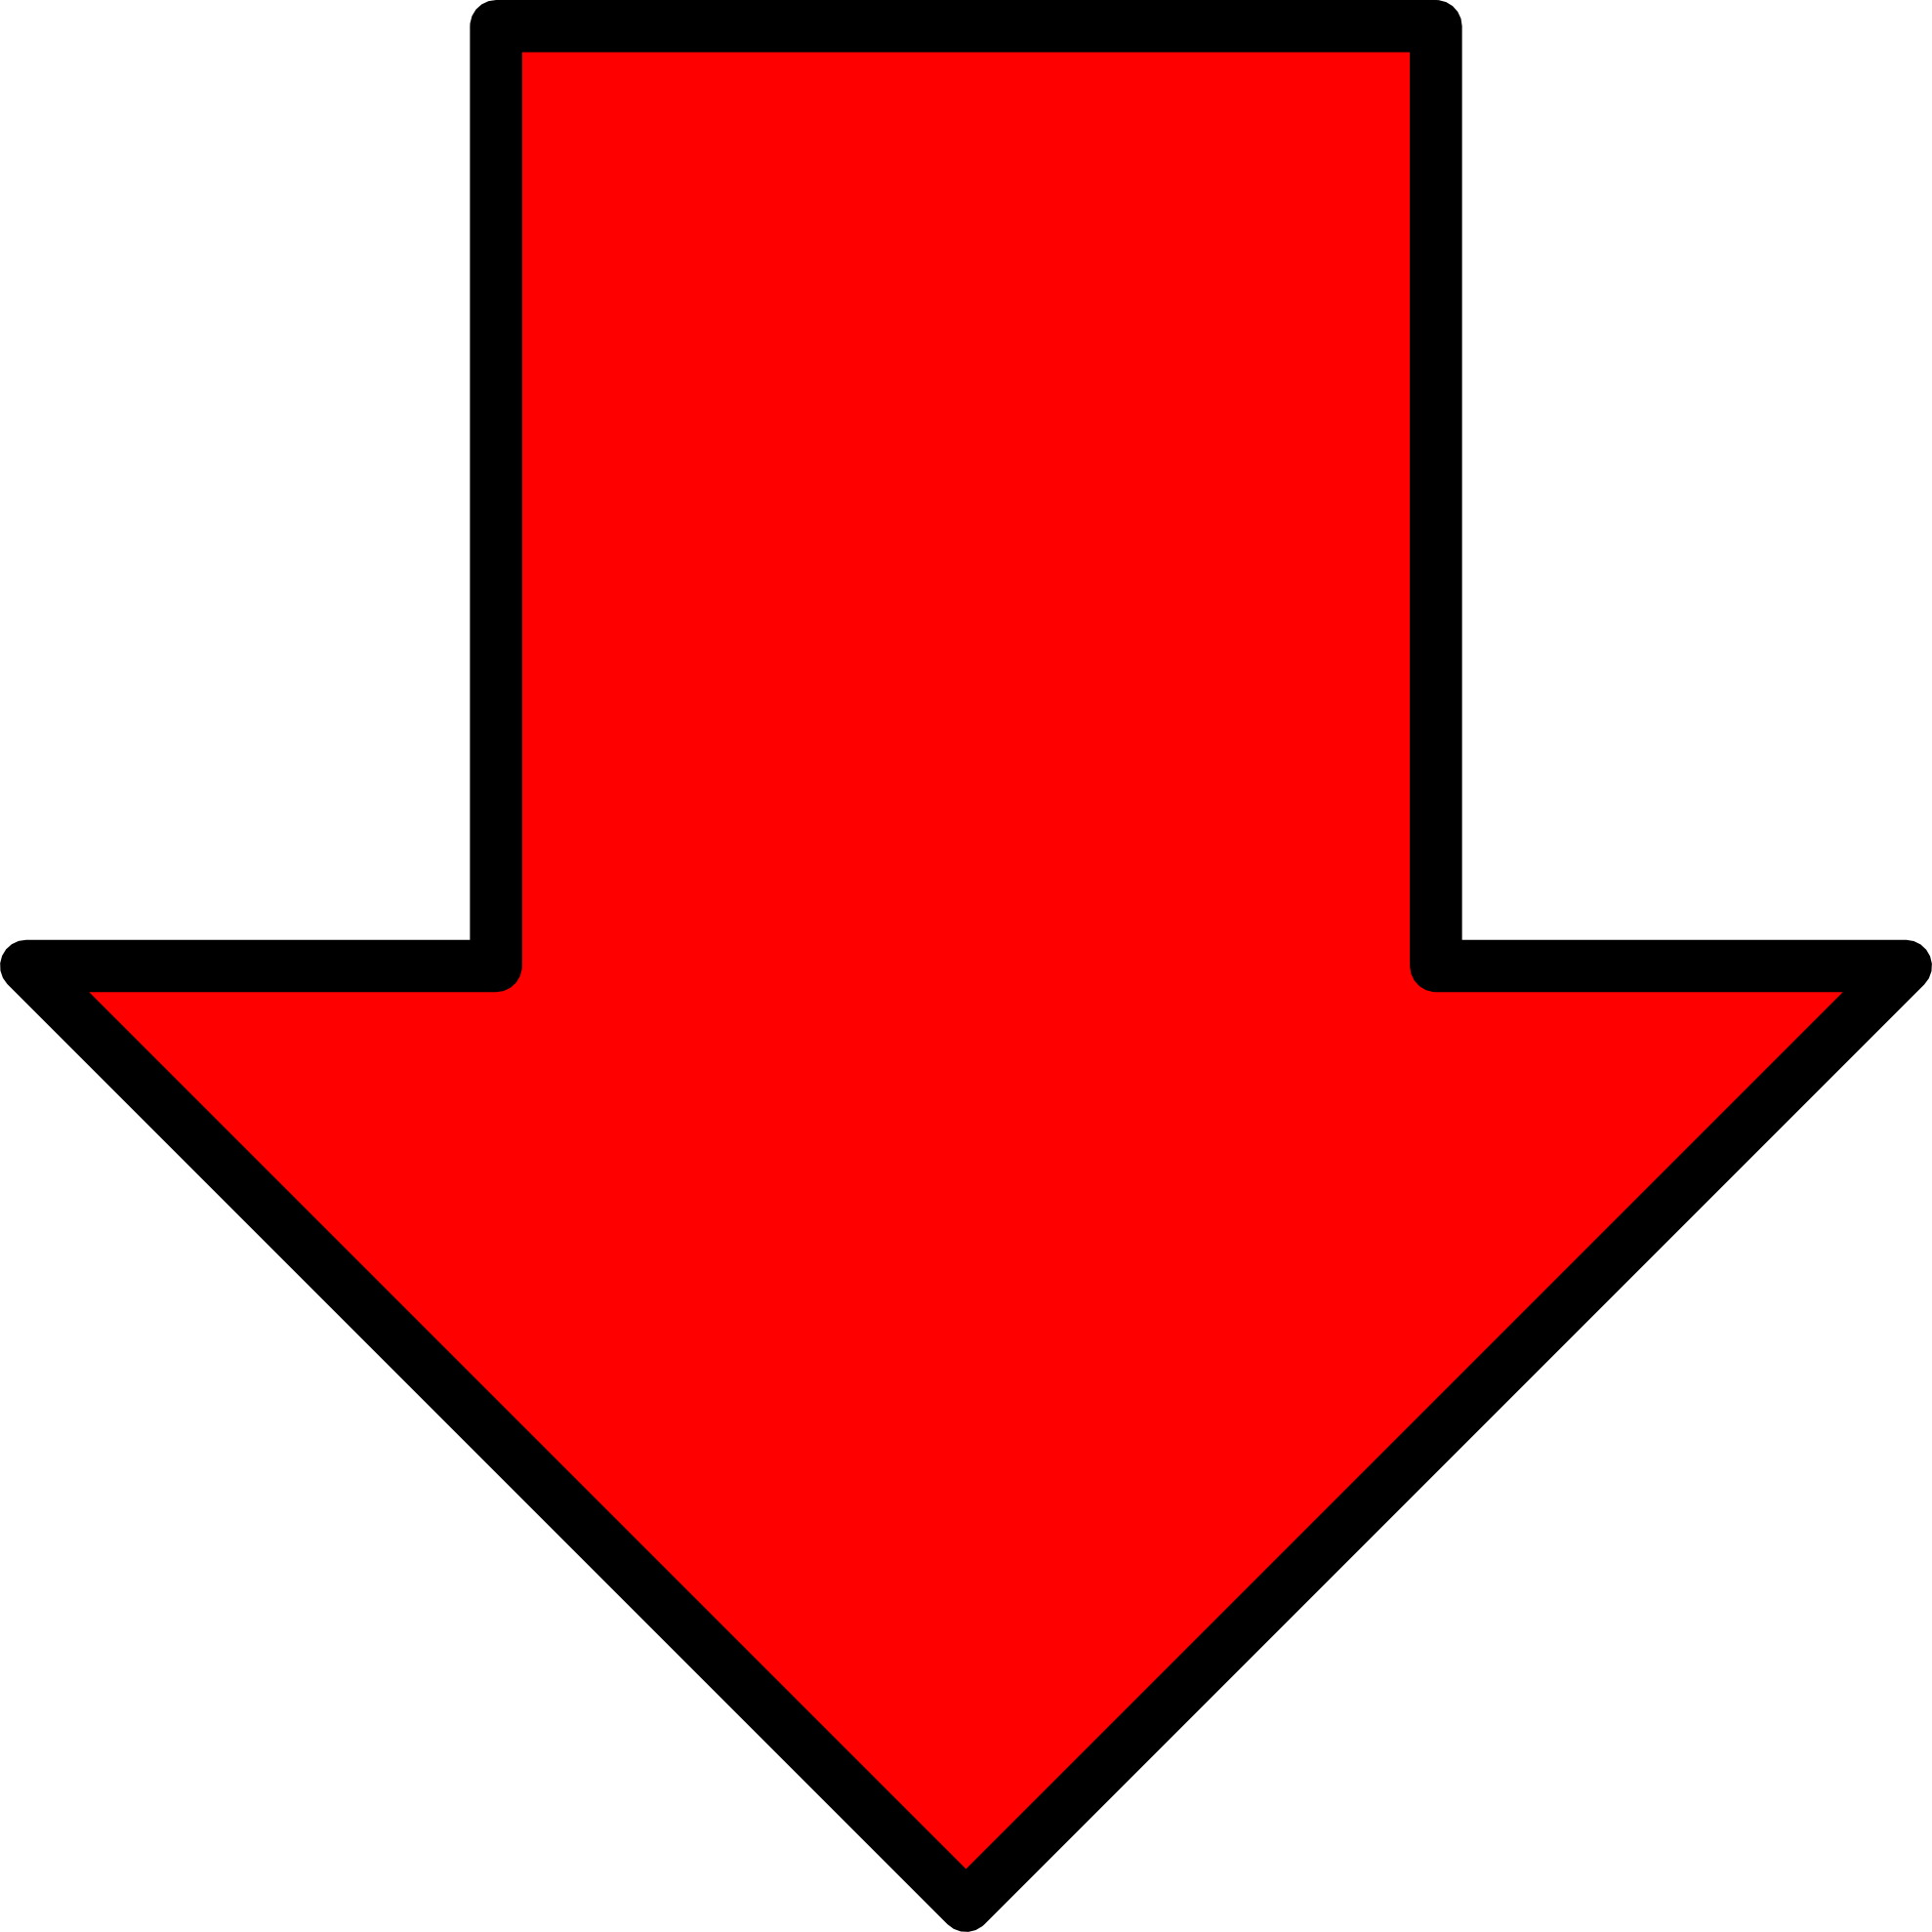 Red arrow down png #4740.